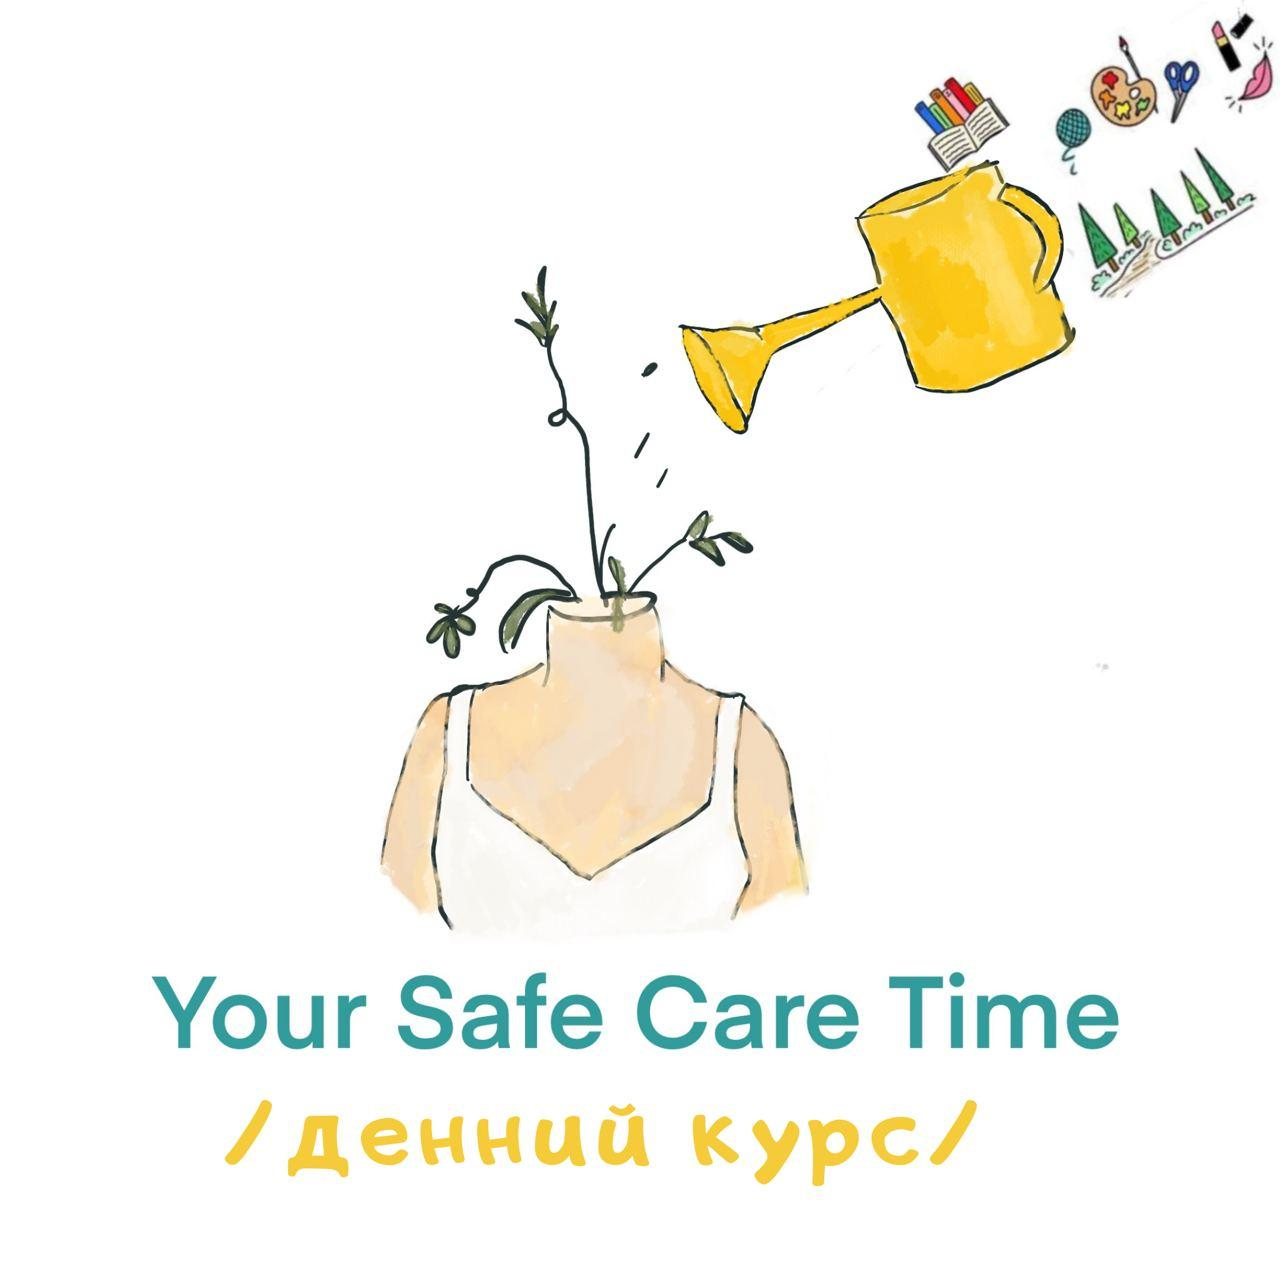 Your Self Care Time